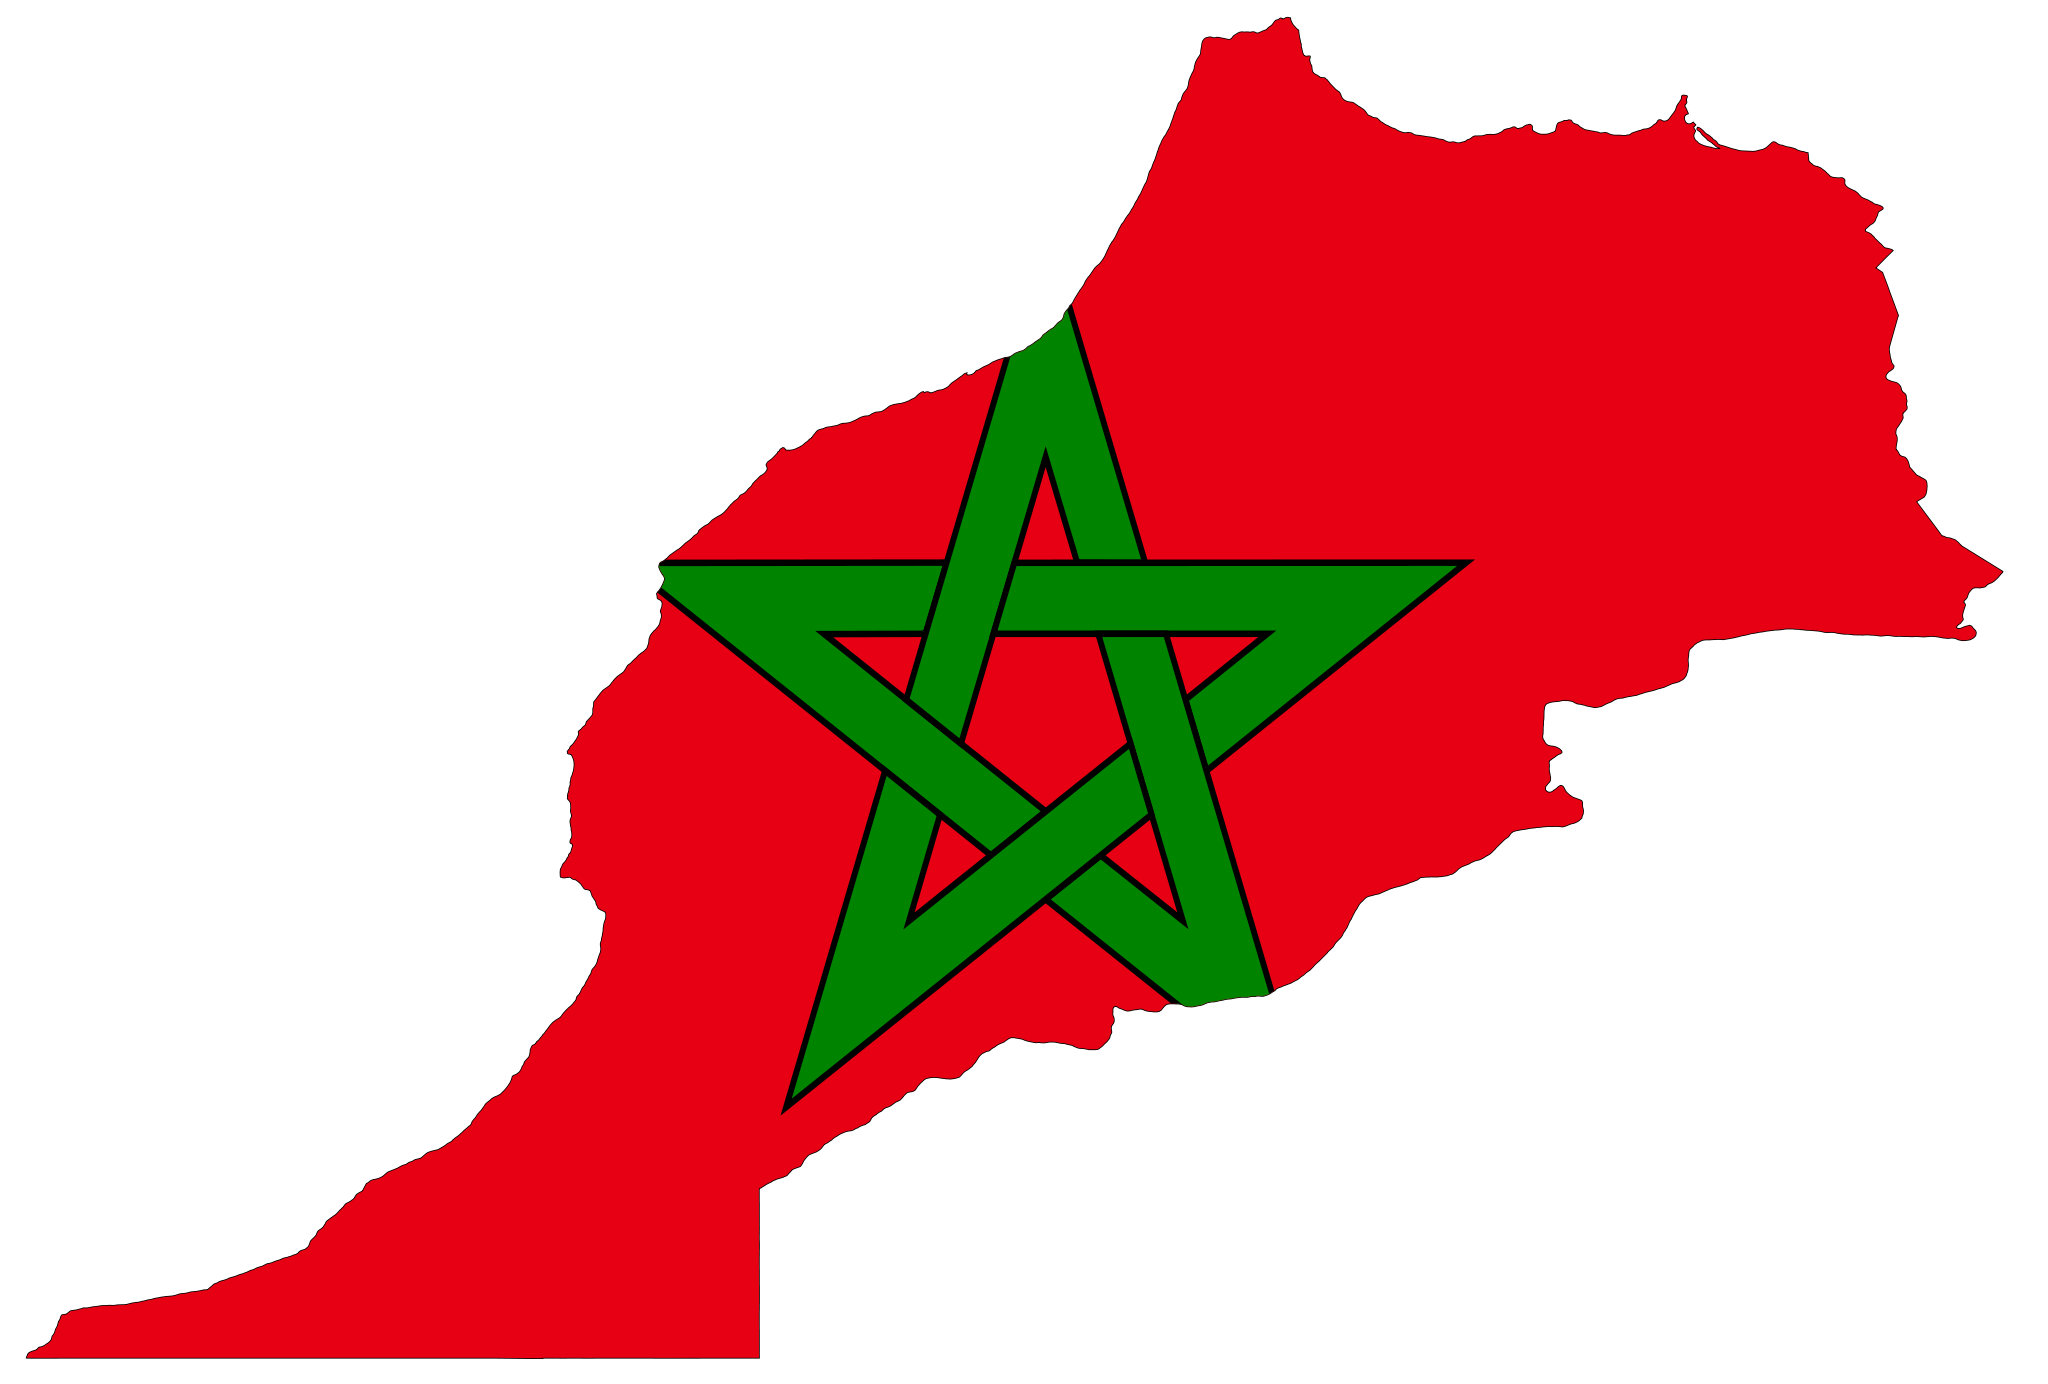 Morocco Flag and Description